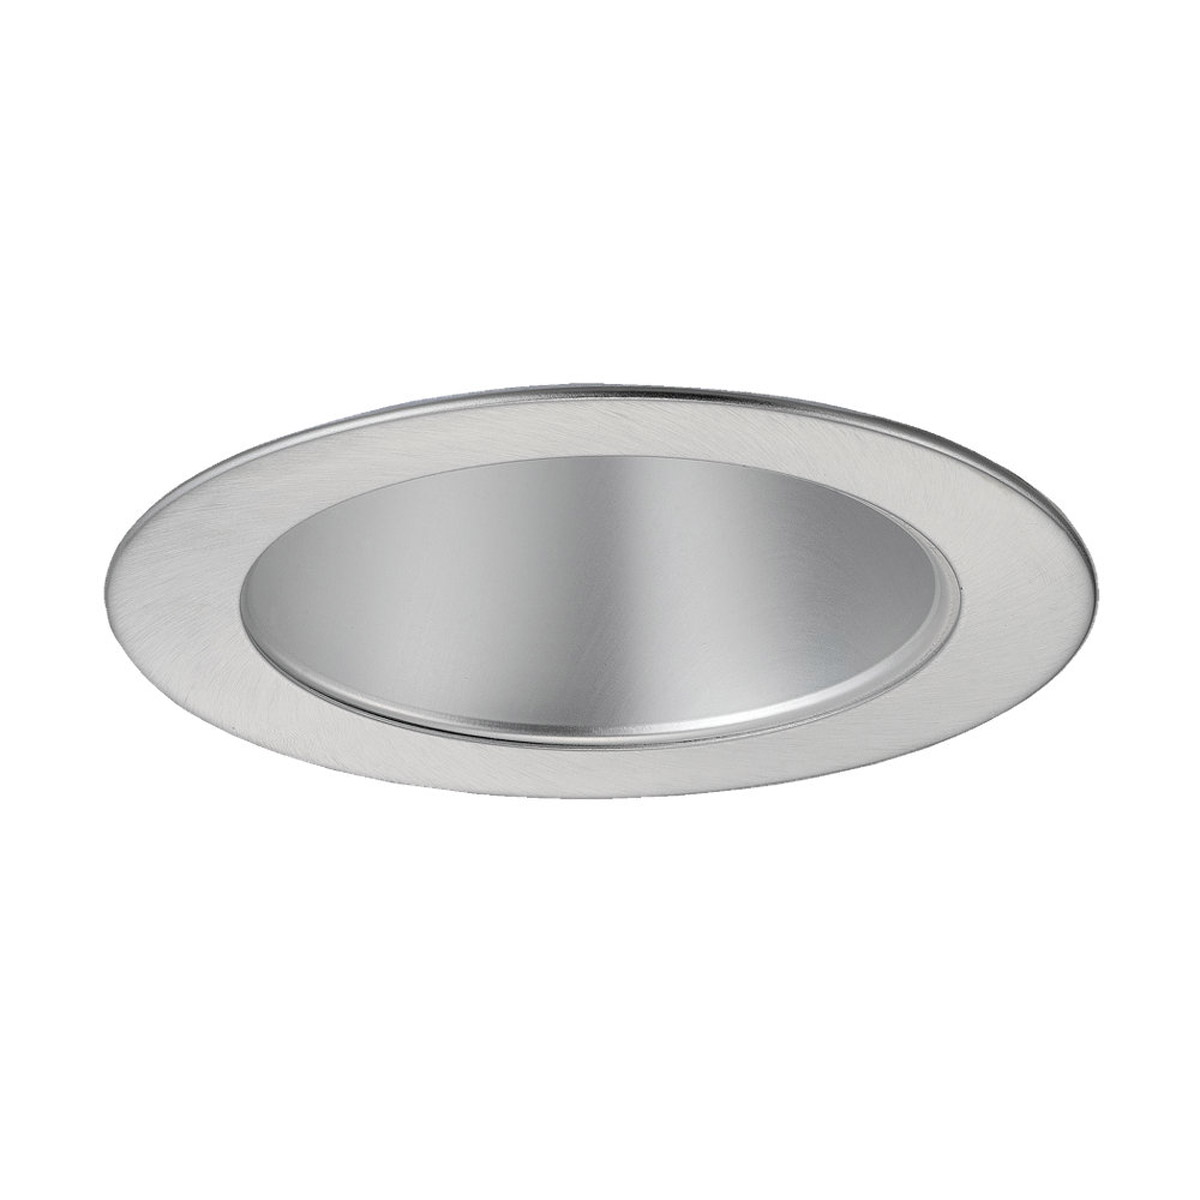 Sea Gull Lighting Signature Recessed Trim Only in Satin Nickel 1232AT-849